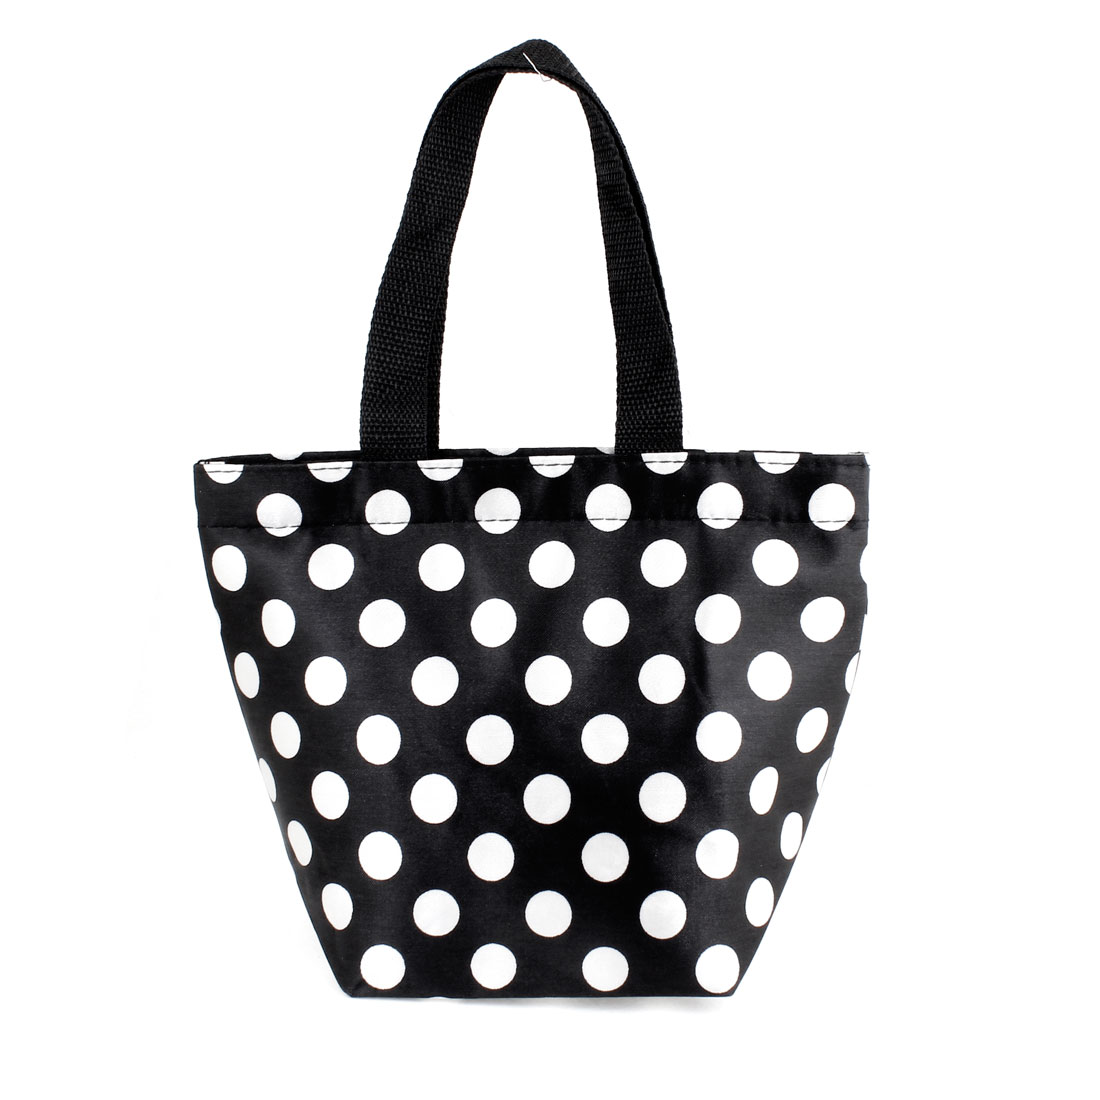 Portable White Dots Pattern Non Woven Shopping Handbag Black